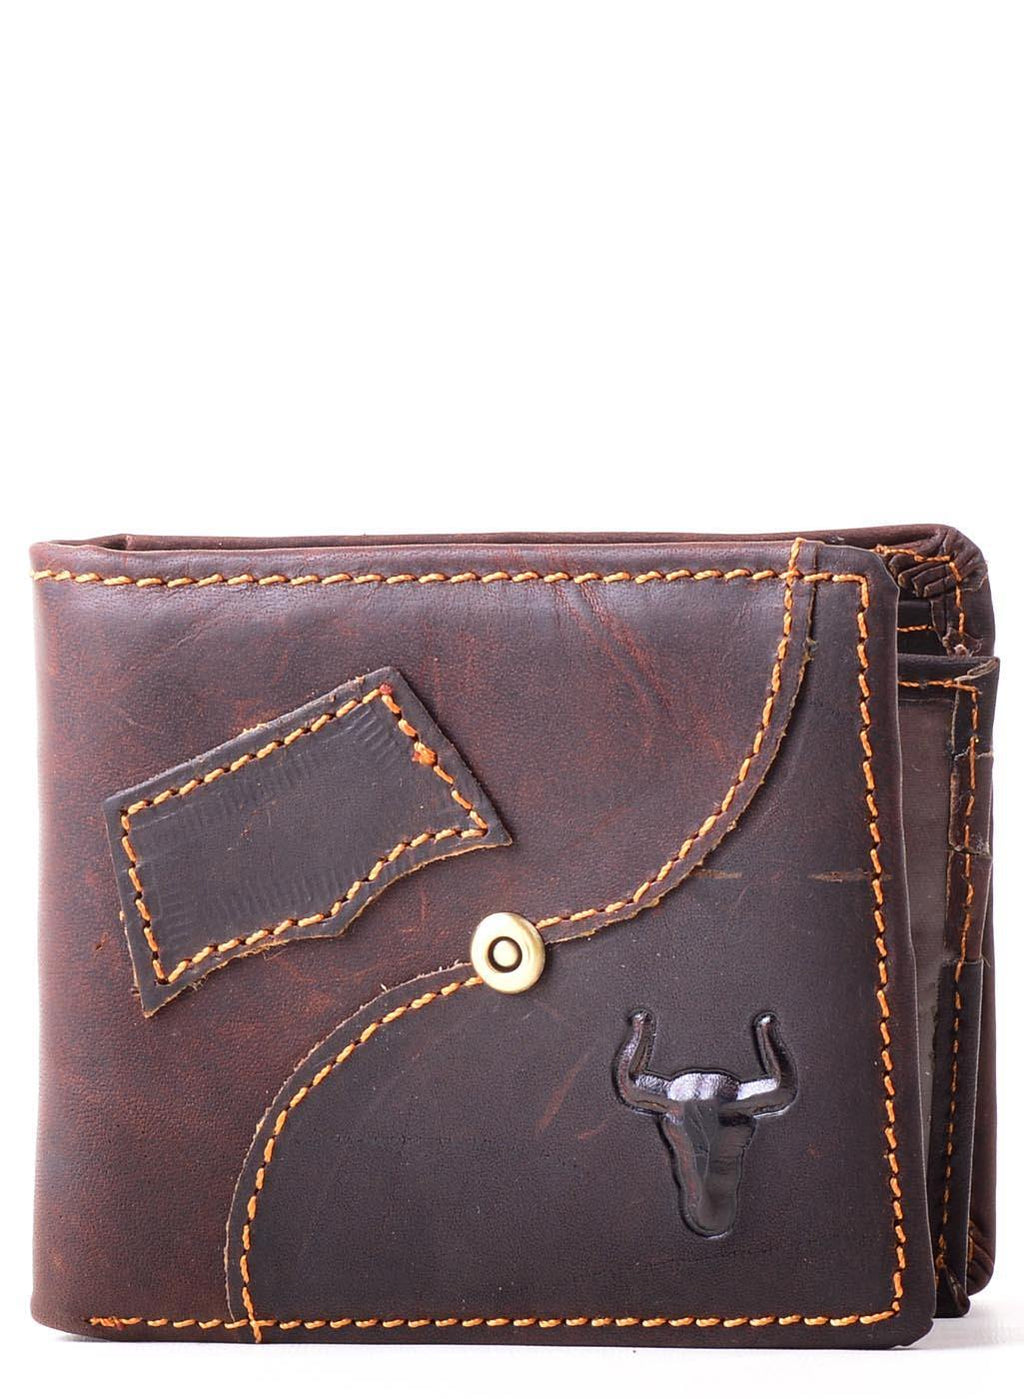 EthniCache Wallet De Luxe Handmade Pure Leather Wallet